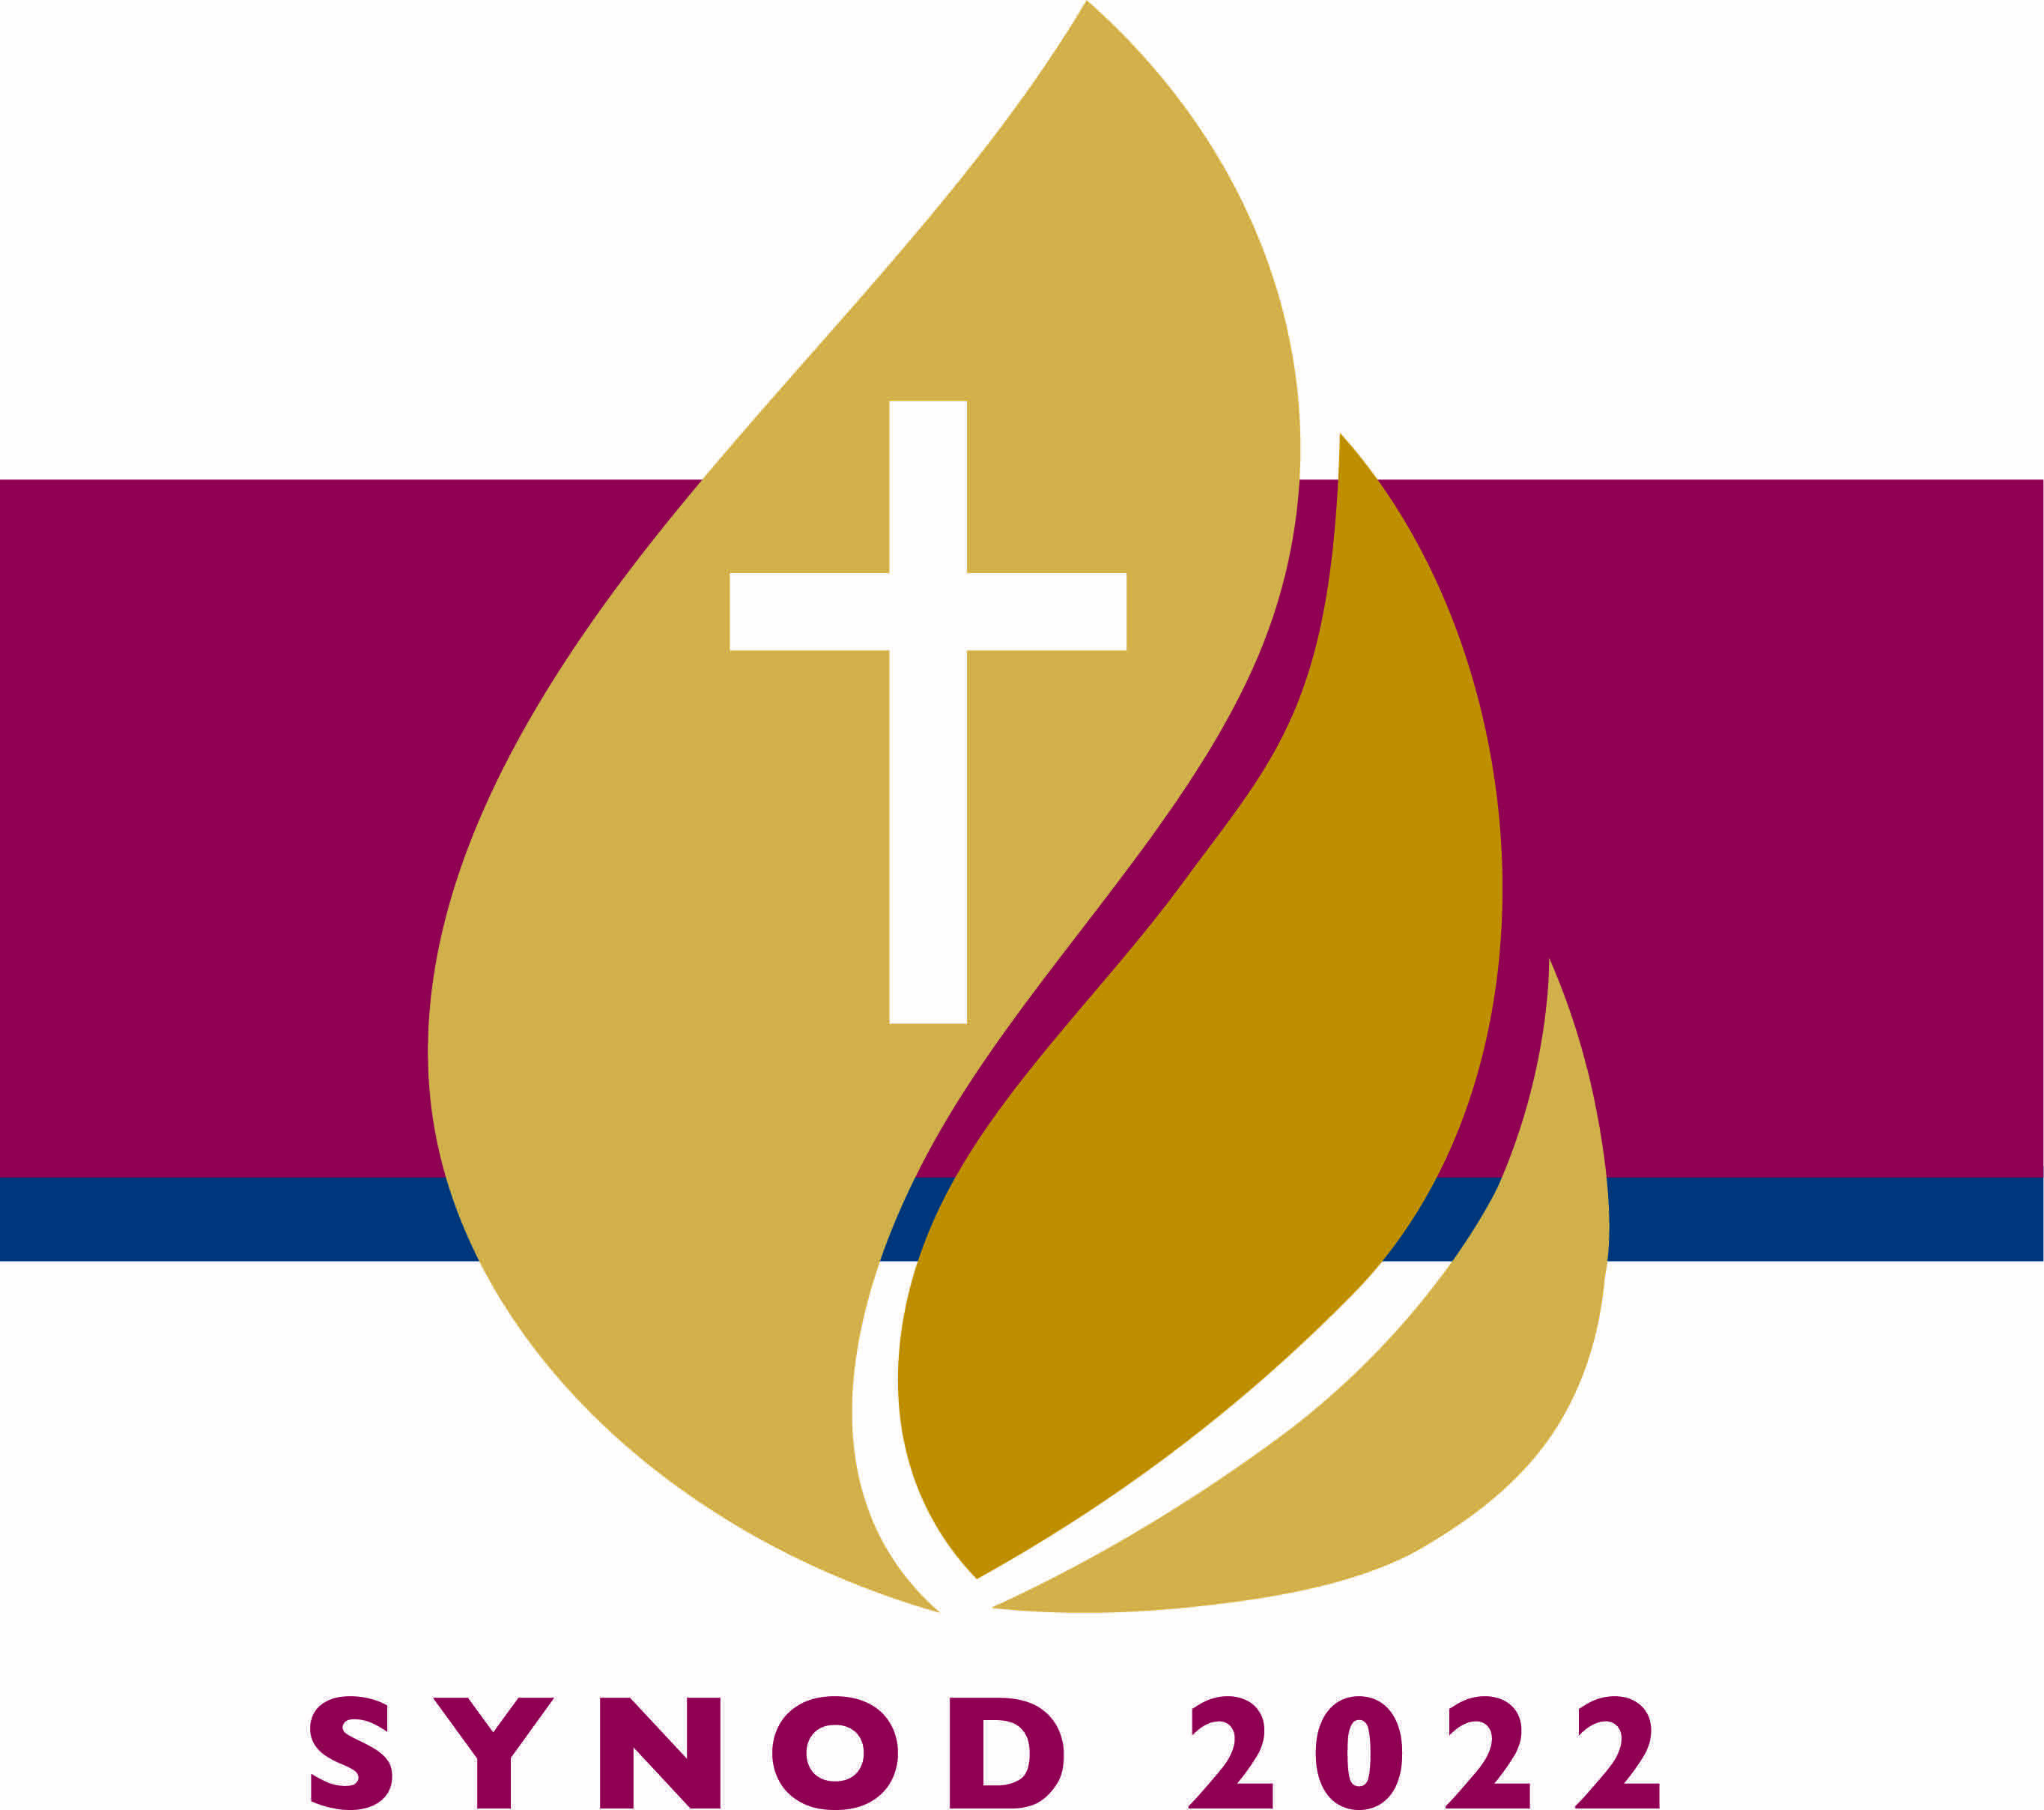 FINAL week left of SJA Synod Small Groups!